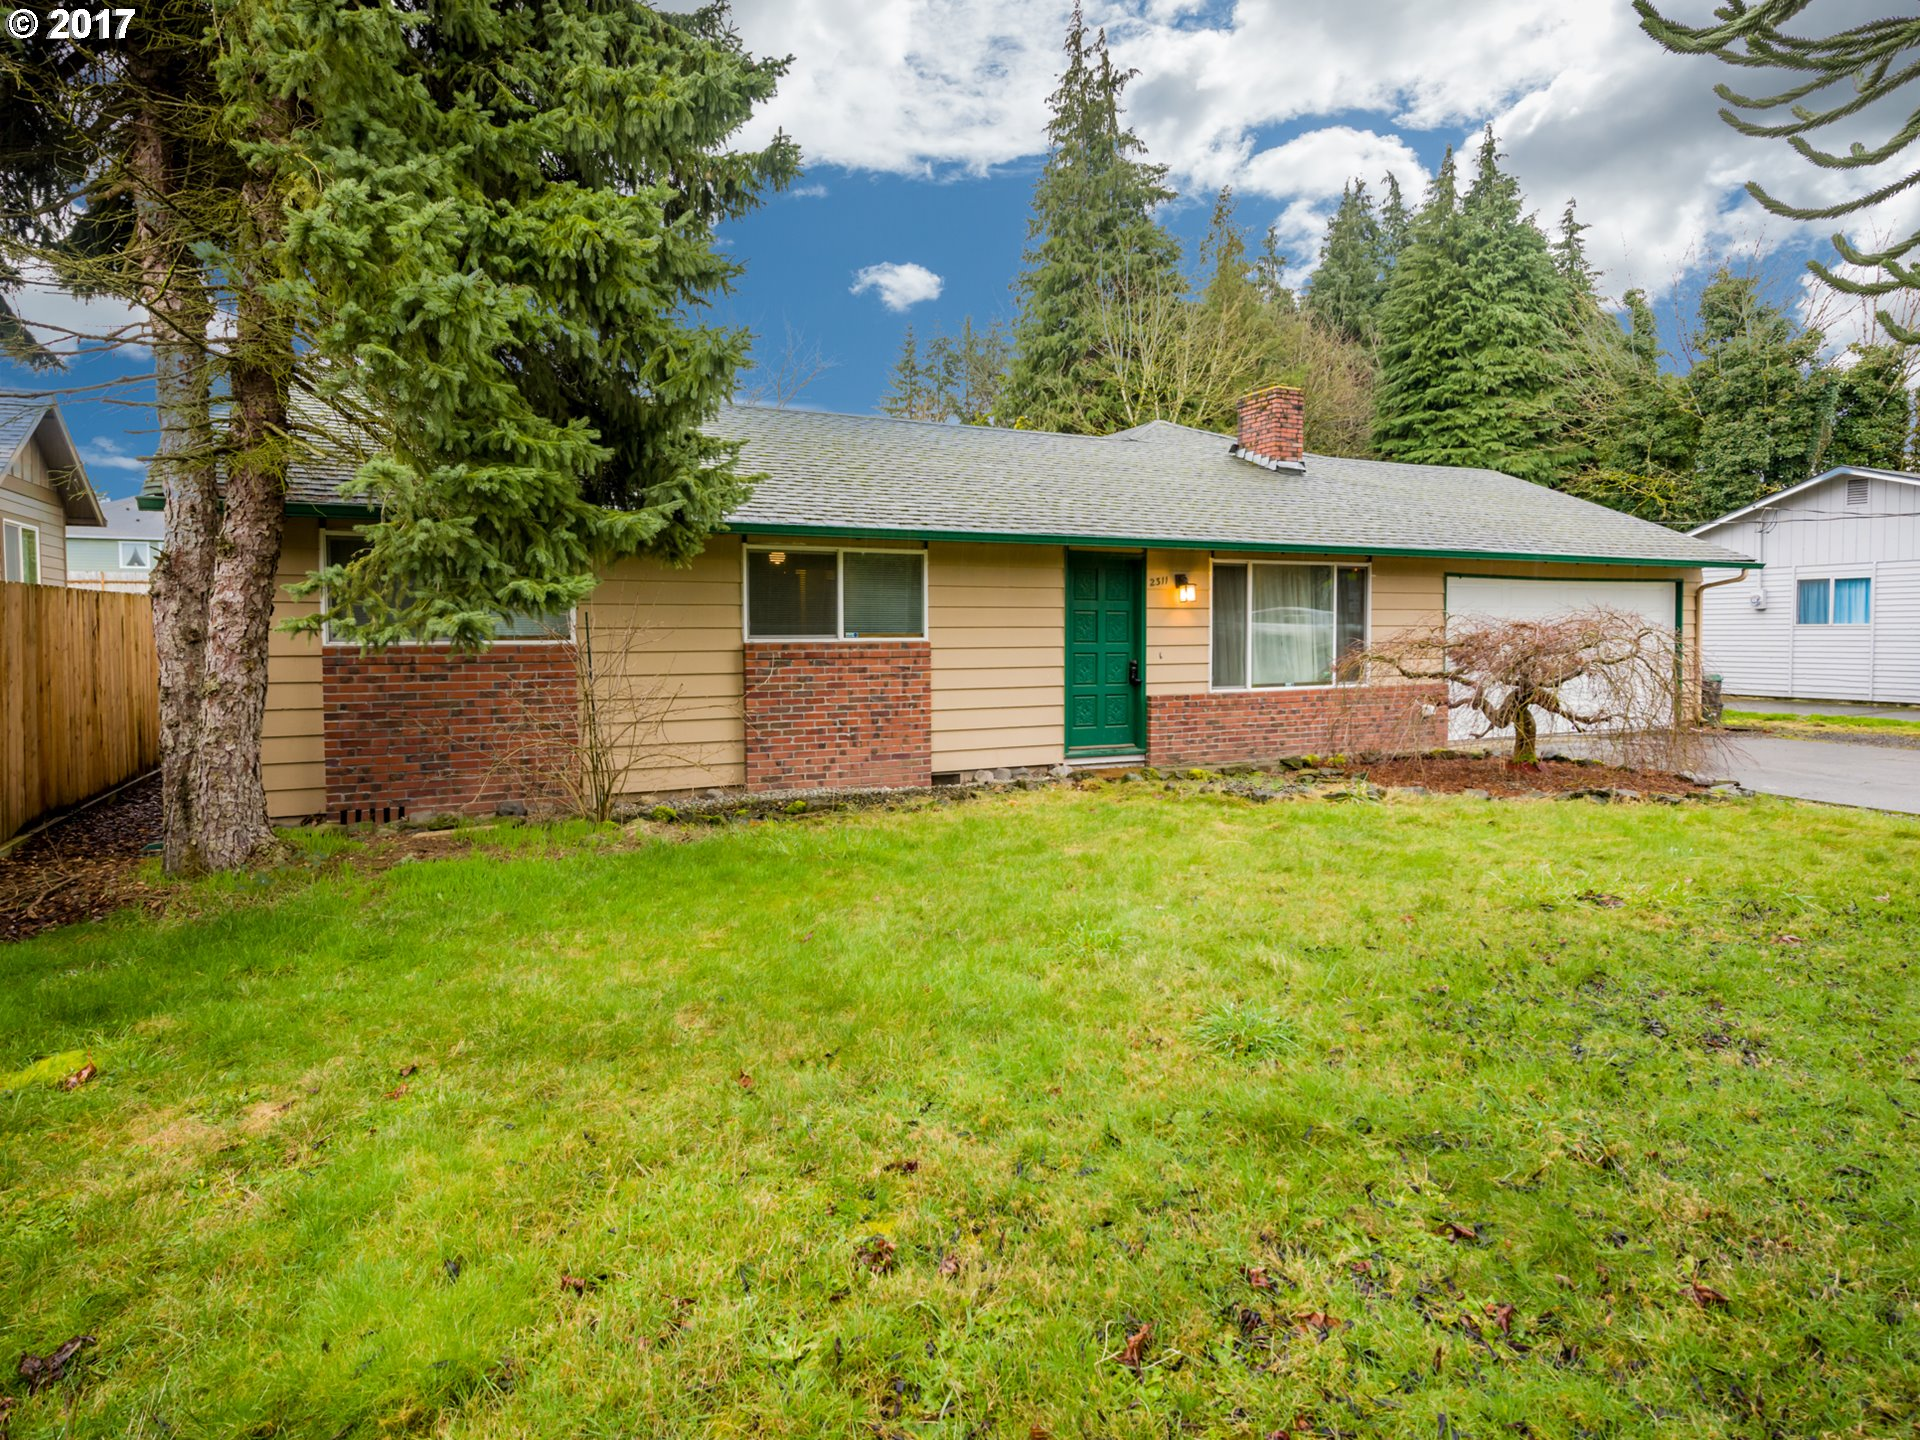 2311 NW 119TH ST, Vancouver, WA 98685